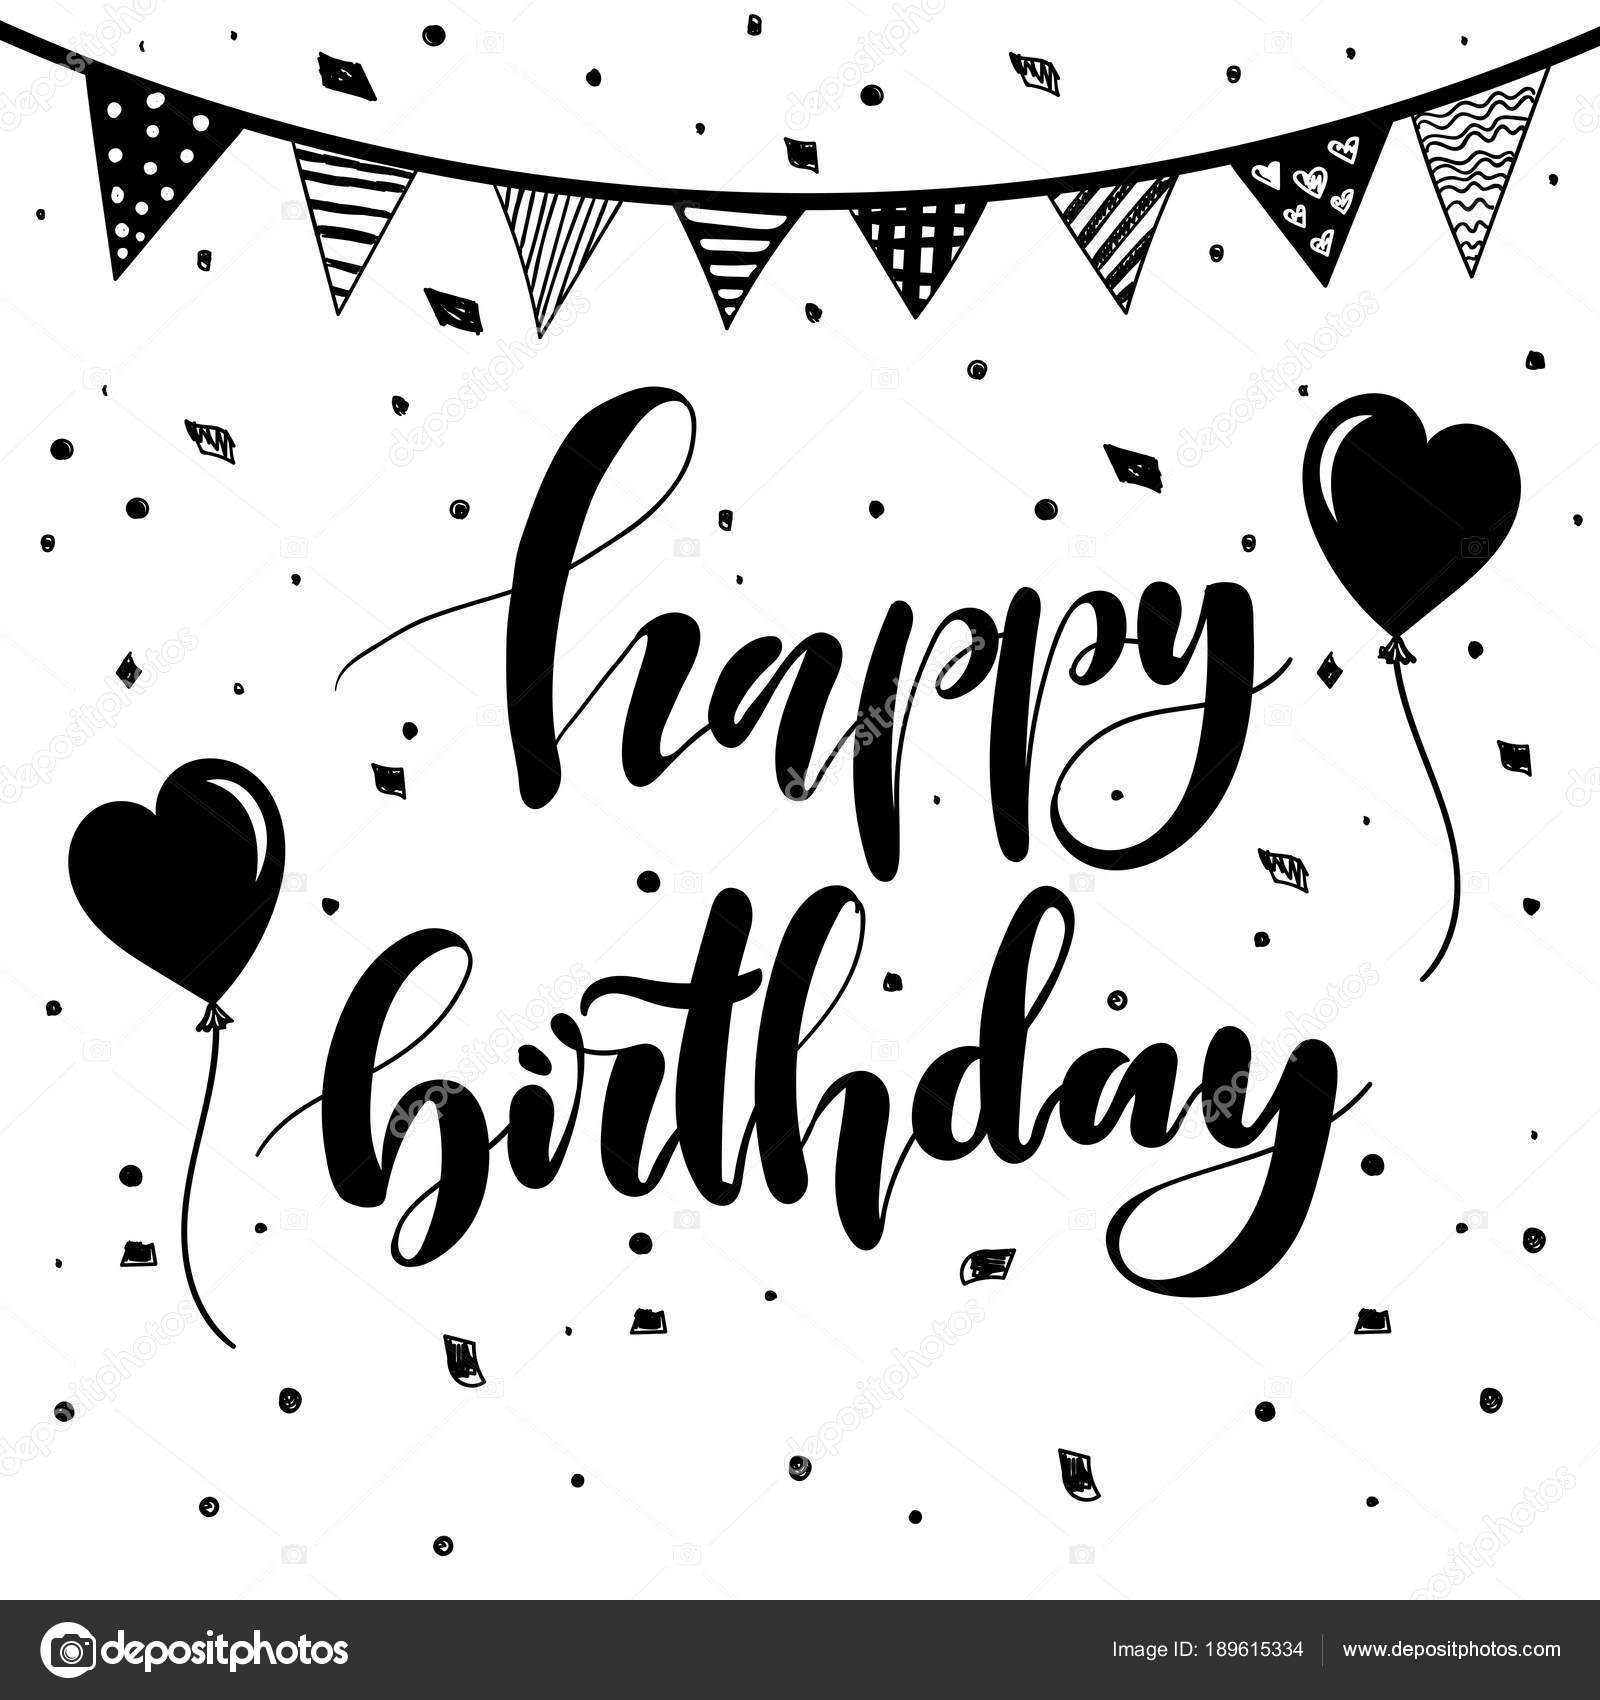 happy birthday hand lettering feliz cumplea 241 os vintage letras a mano cepillo de 22082 | depositphotos 189615334 stock illustration happy birthday vintage hand lettering